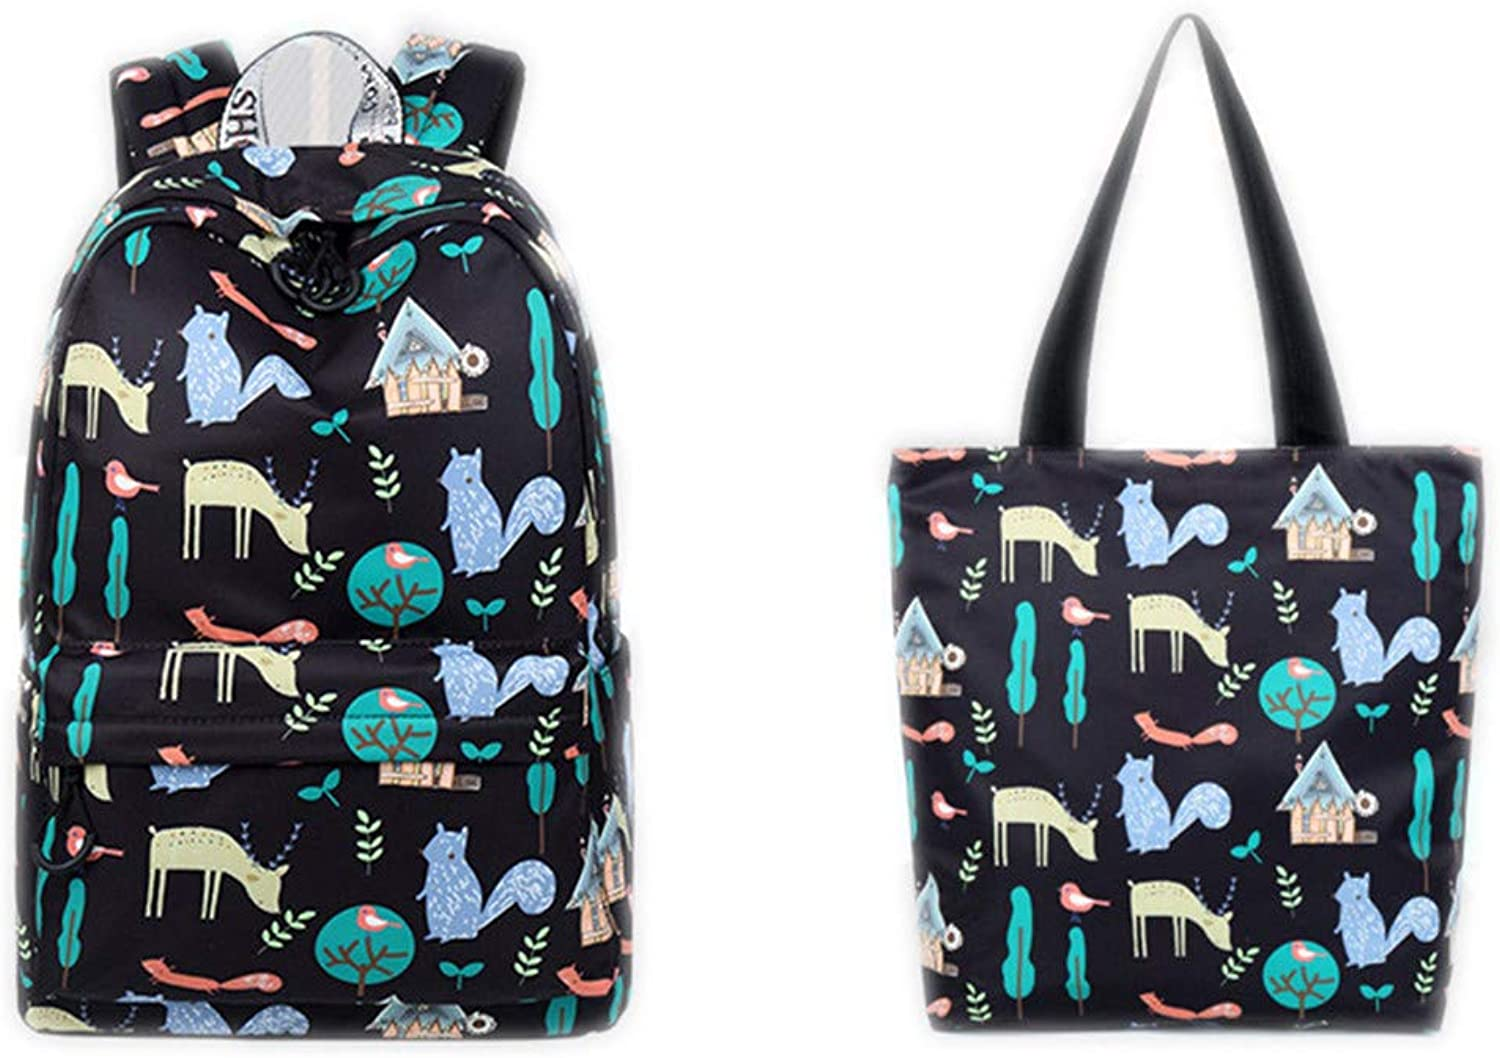 Youth Waterproof Women Backpack Cute Animal Squirrel Pattern Printing Large Capacity Girls Daily College Laptop Rucksack Black Set 14 inches